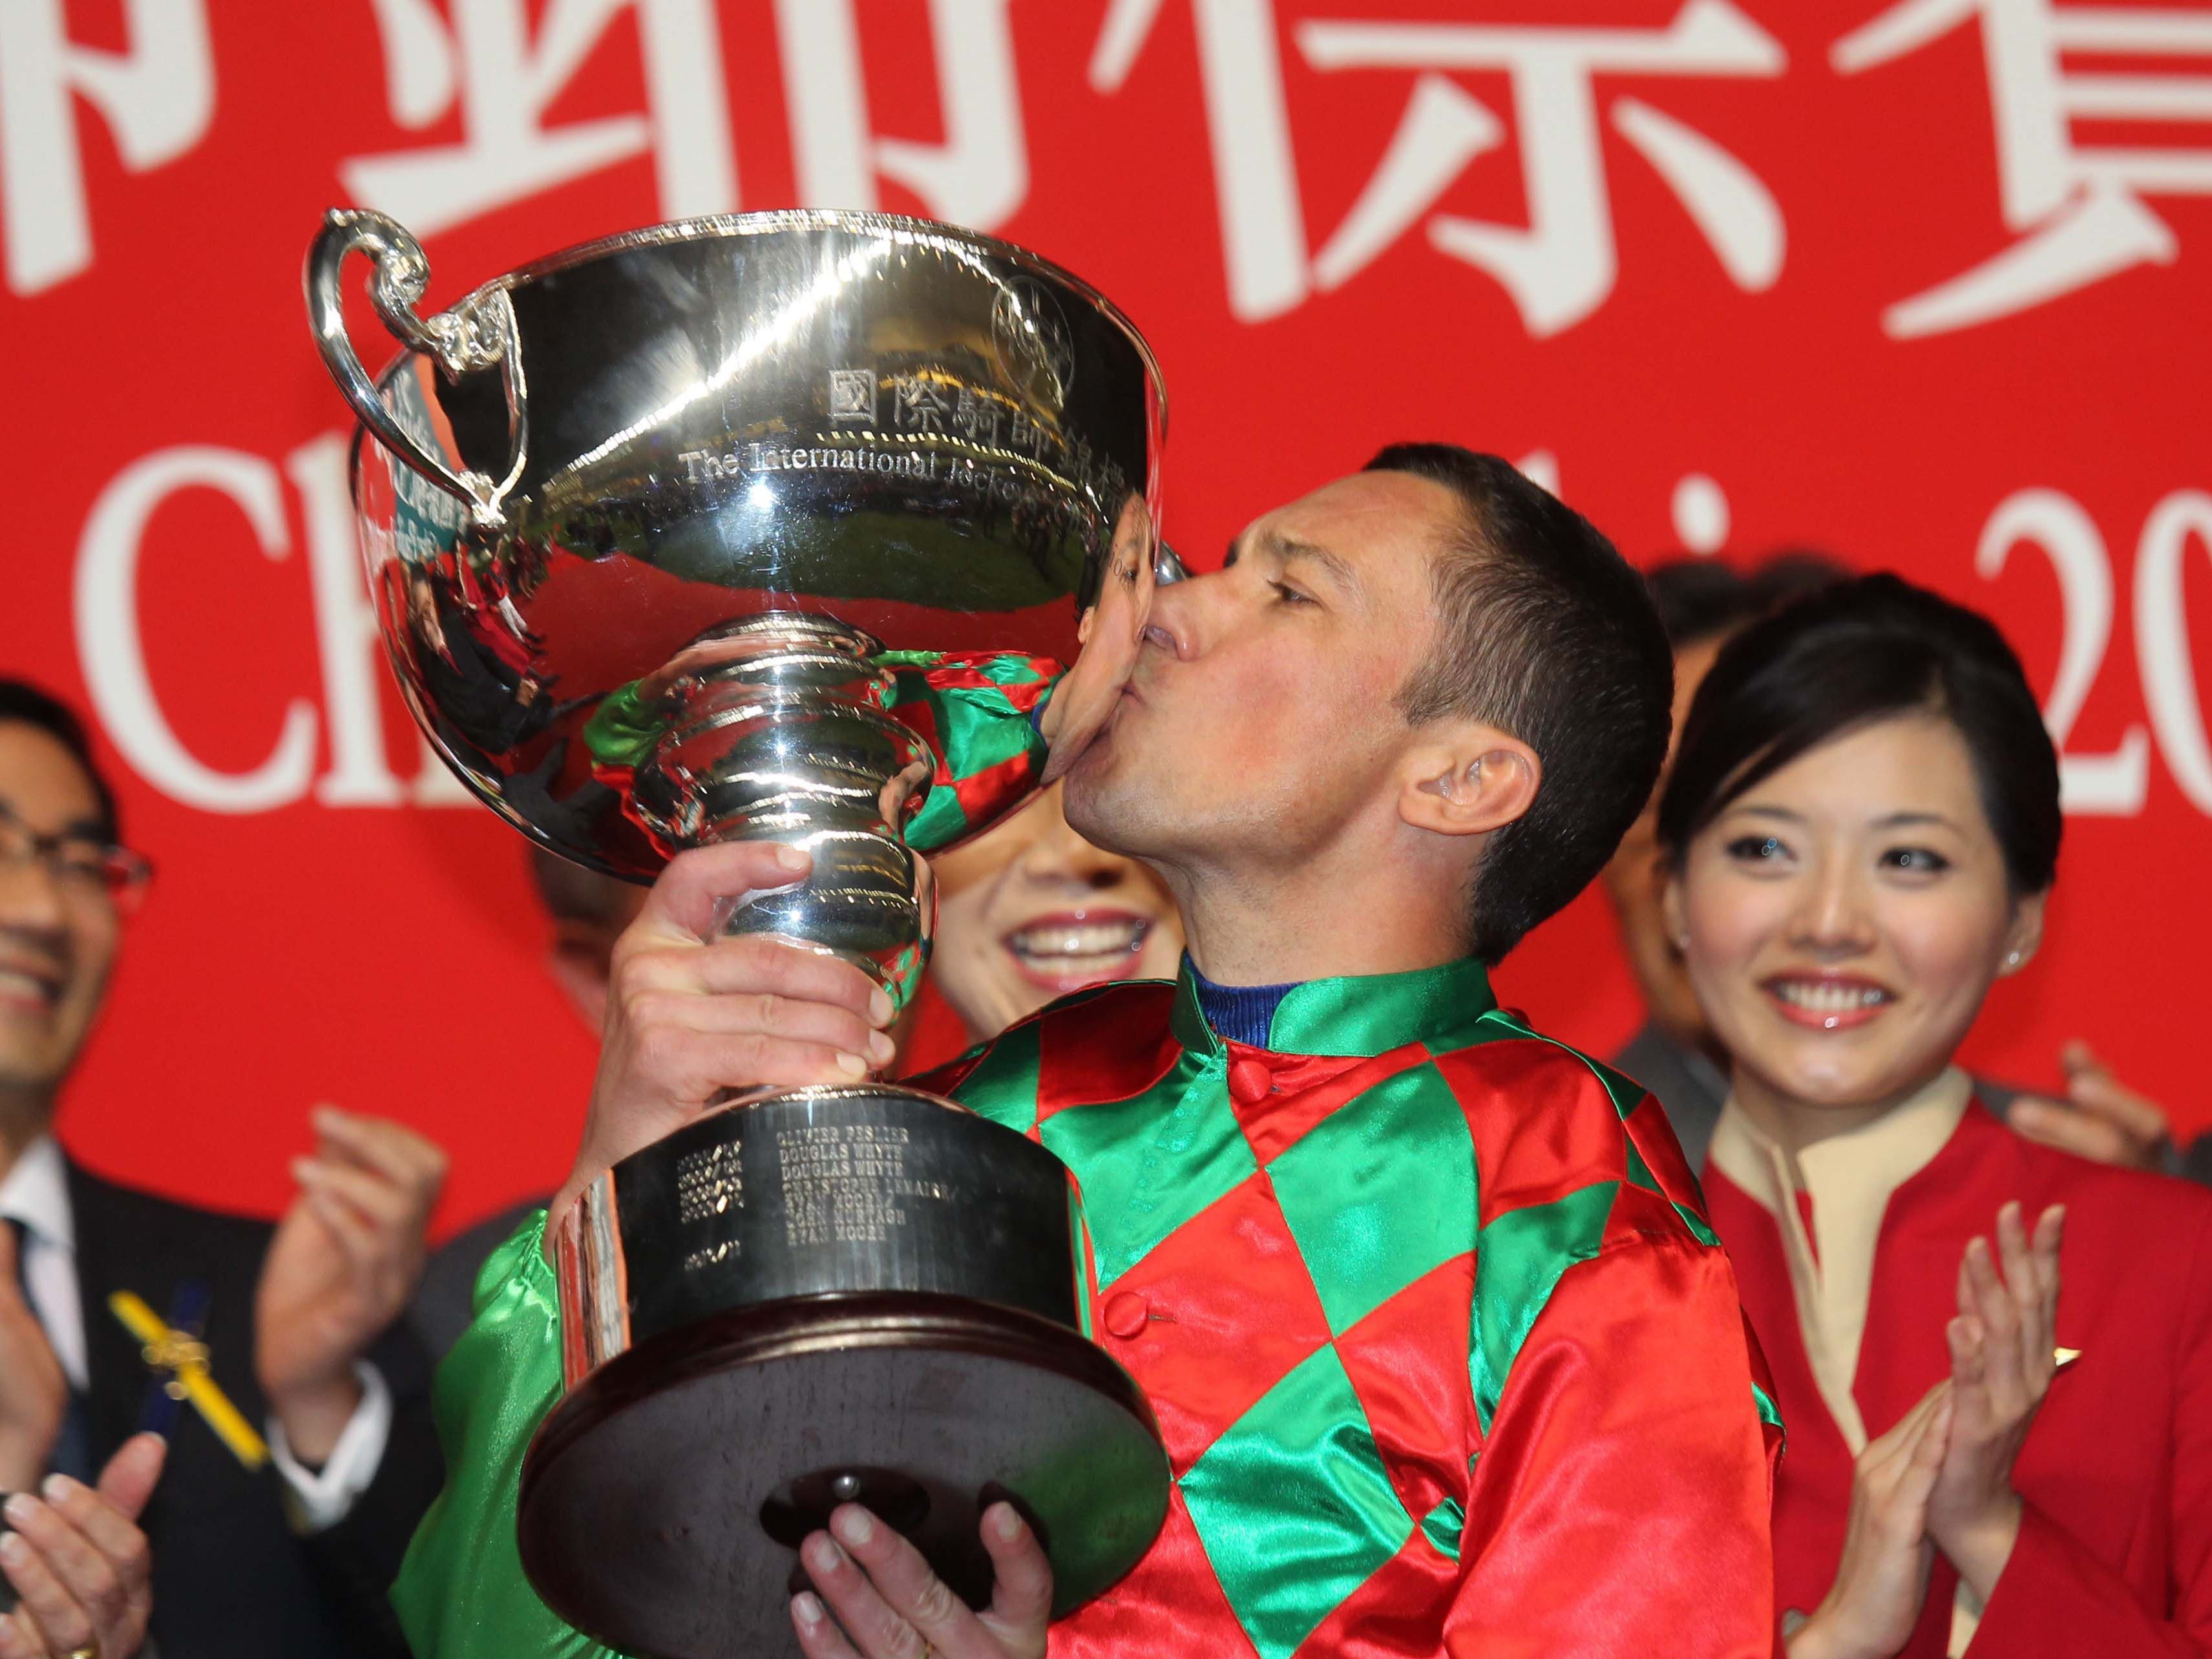 Frankie Dettori is aiming to win the International Jockeys' Championship for the fourth time (HKJC)